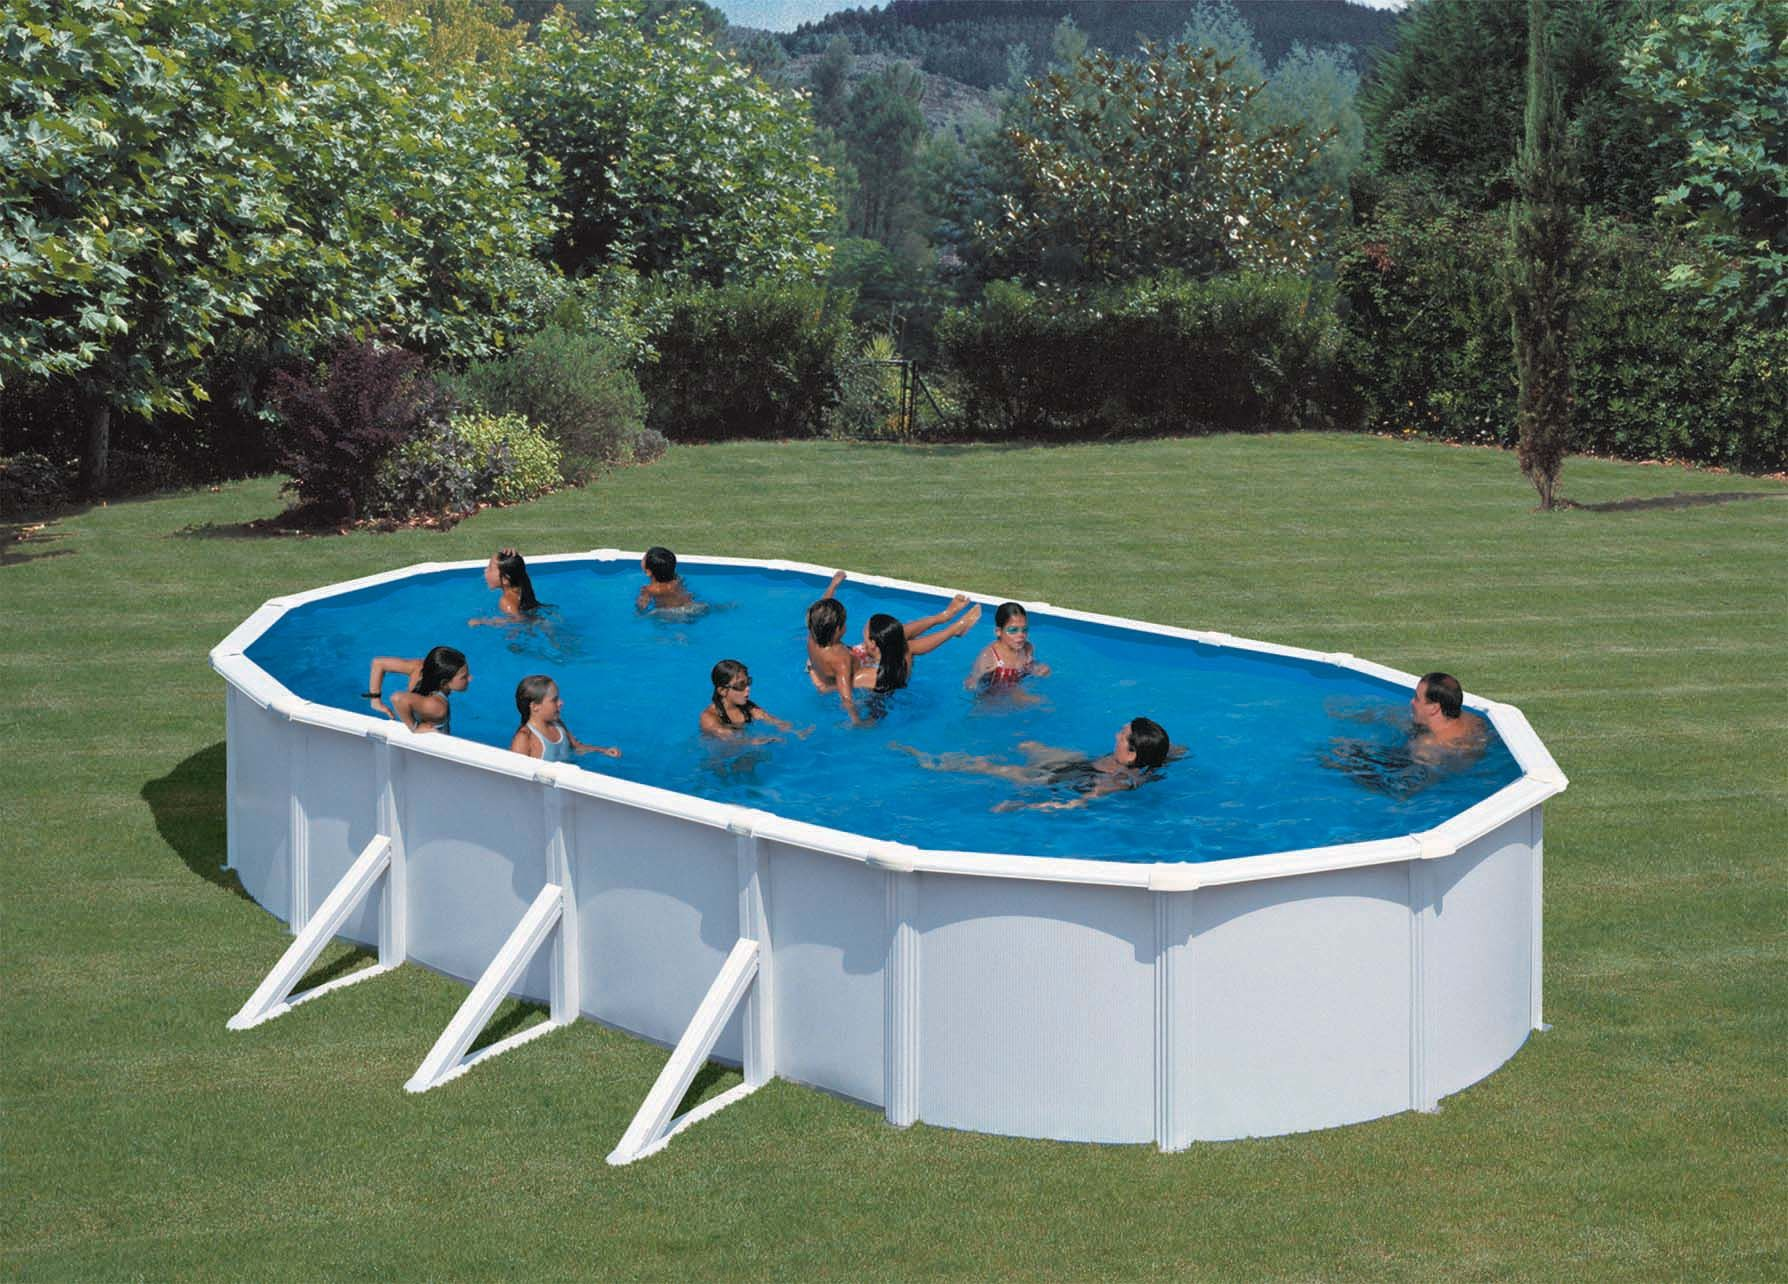 pools Oval Steel Pool 730 X 375cm Our deluxe Gre steel